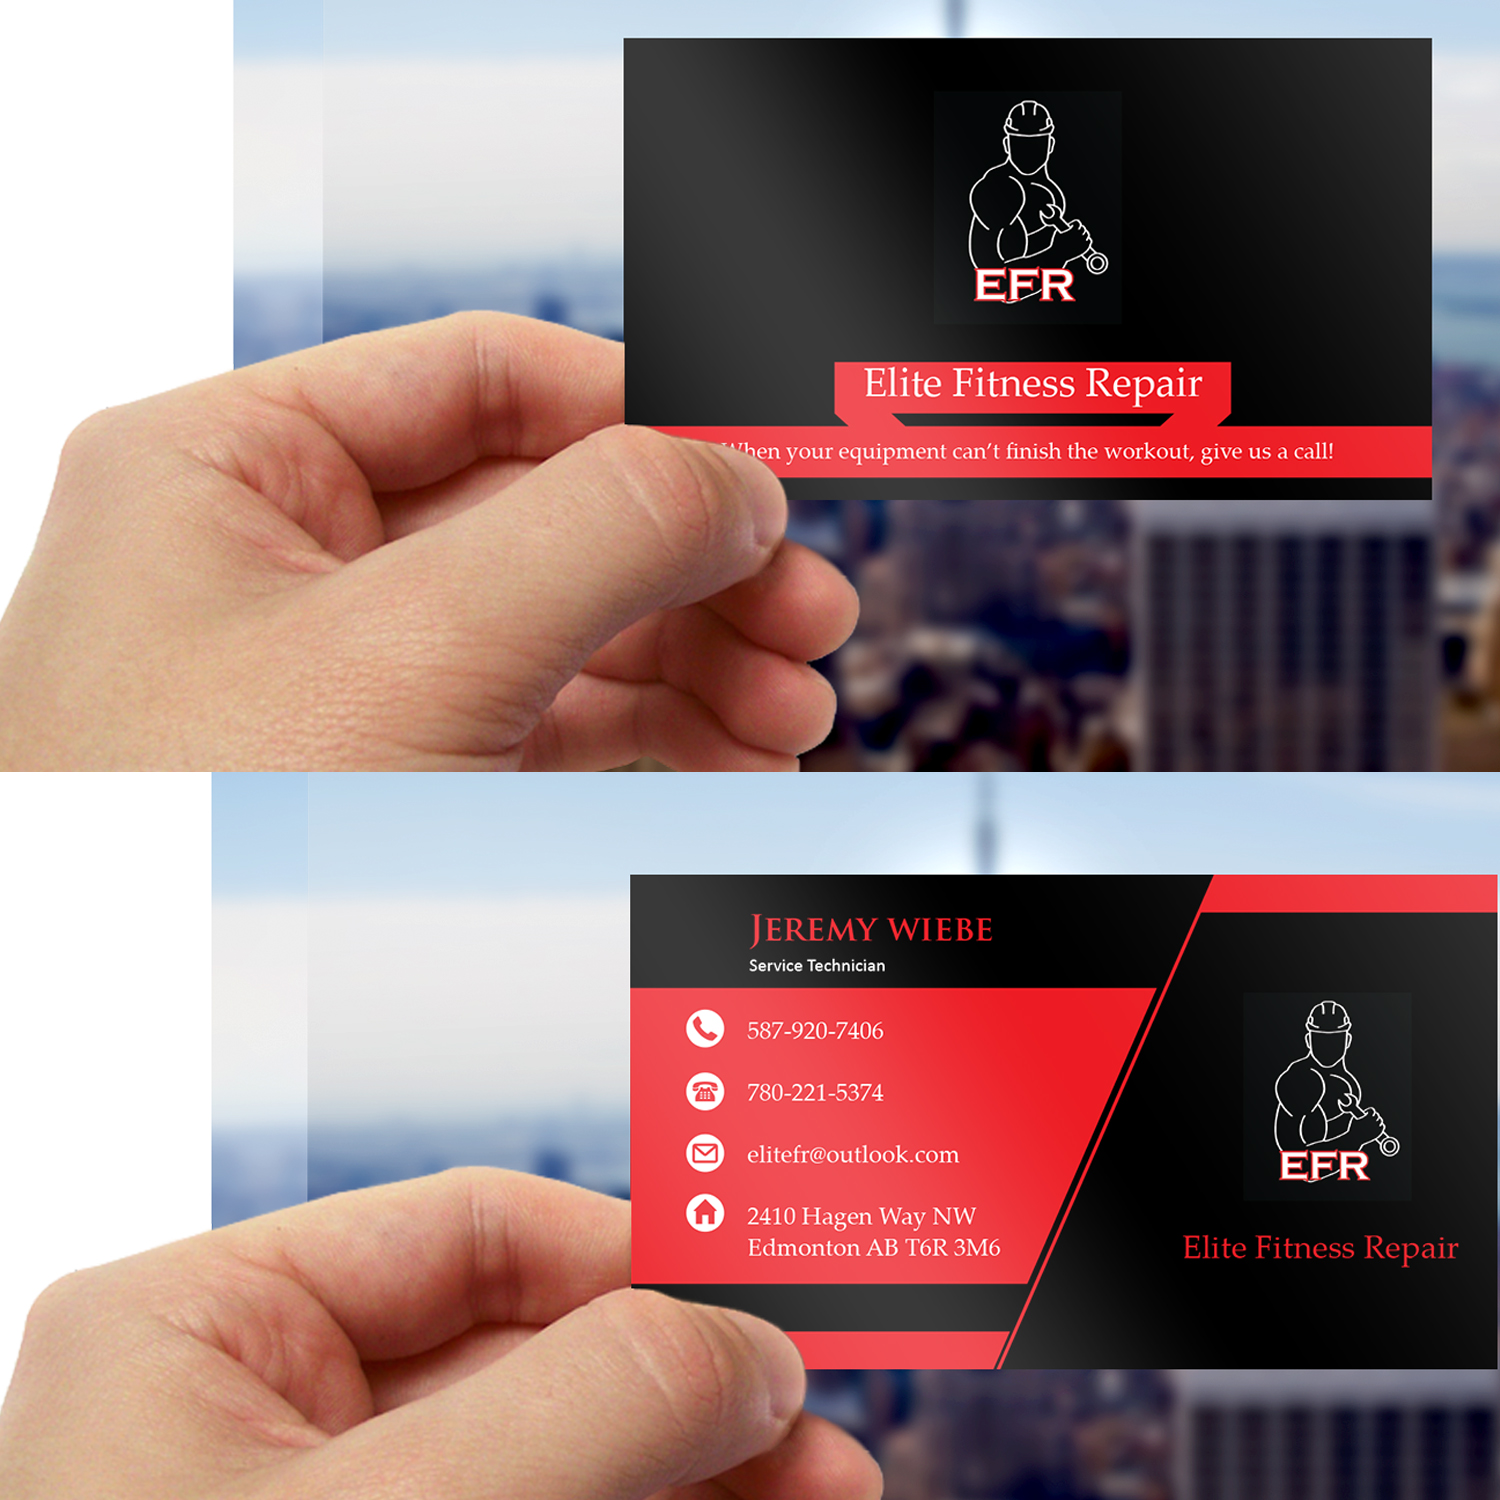 95 Bold Professional Appliance Repair Business Card Designs for a